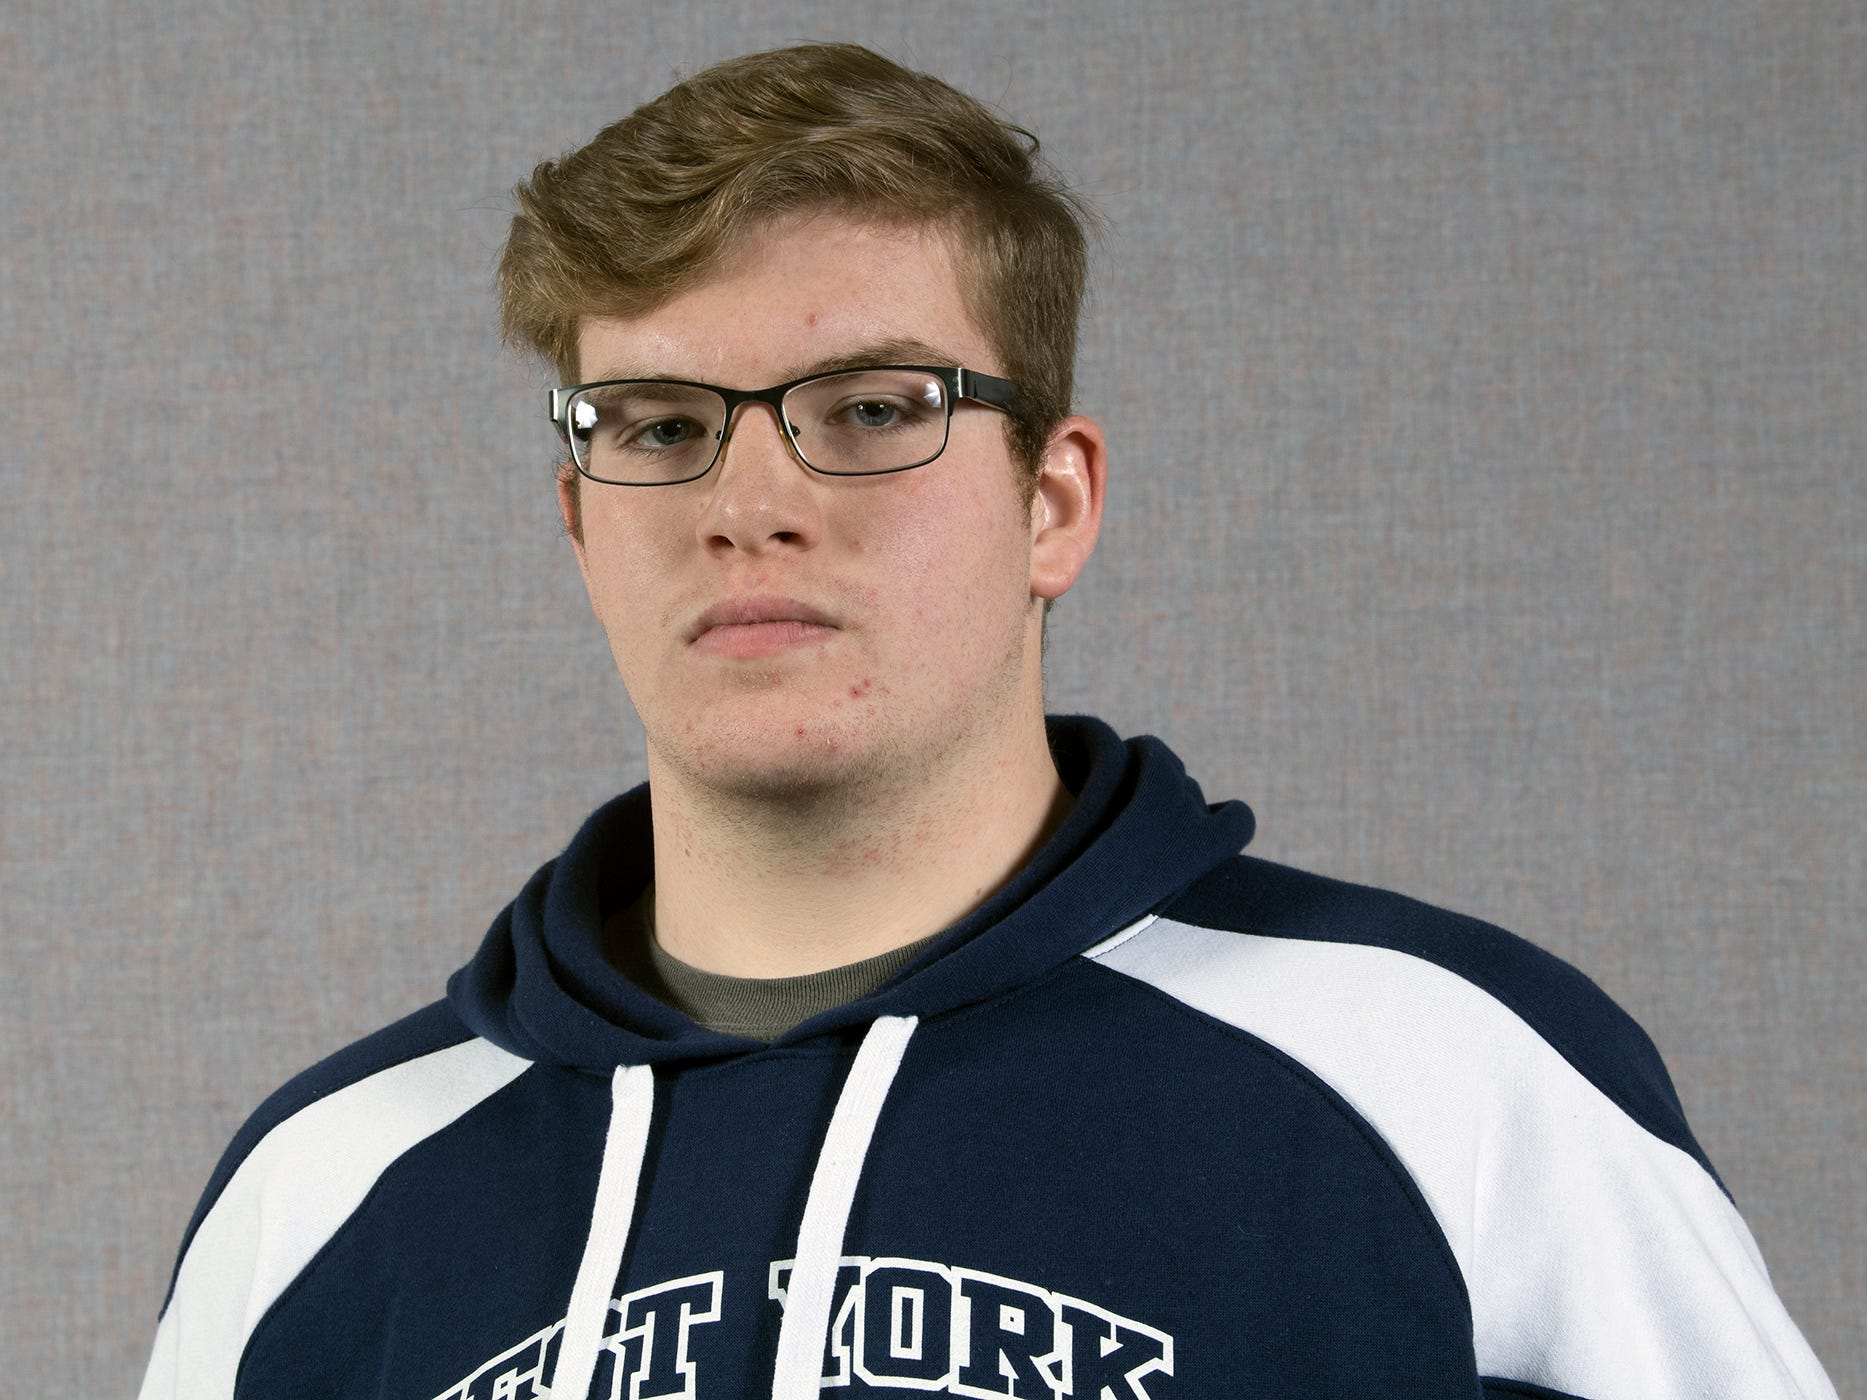 Frank Veloce, of the West York Area High School wrestling team, during the 2018-19 GameTimePa YAIAA Winter Media Day Sunday November 11, 2018.